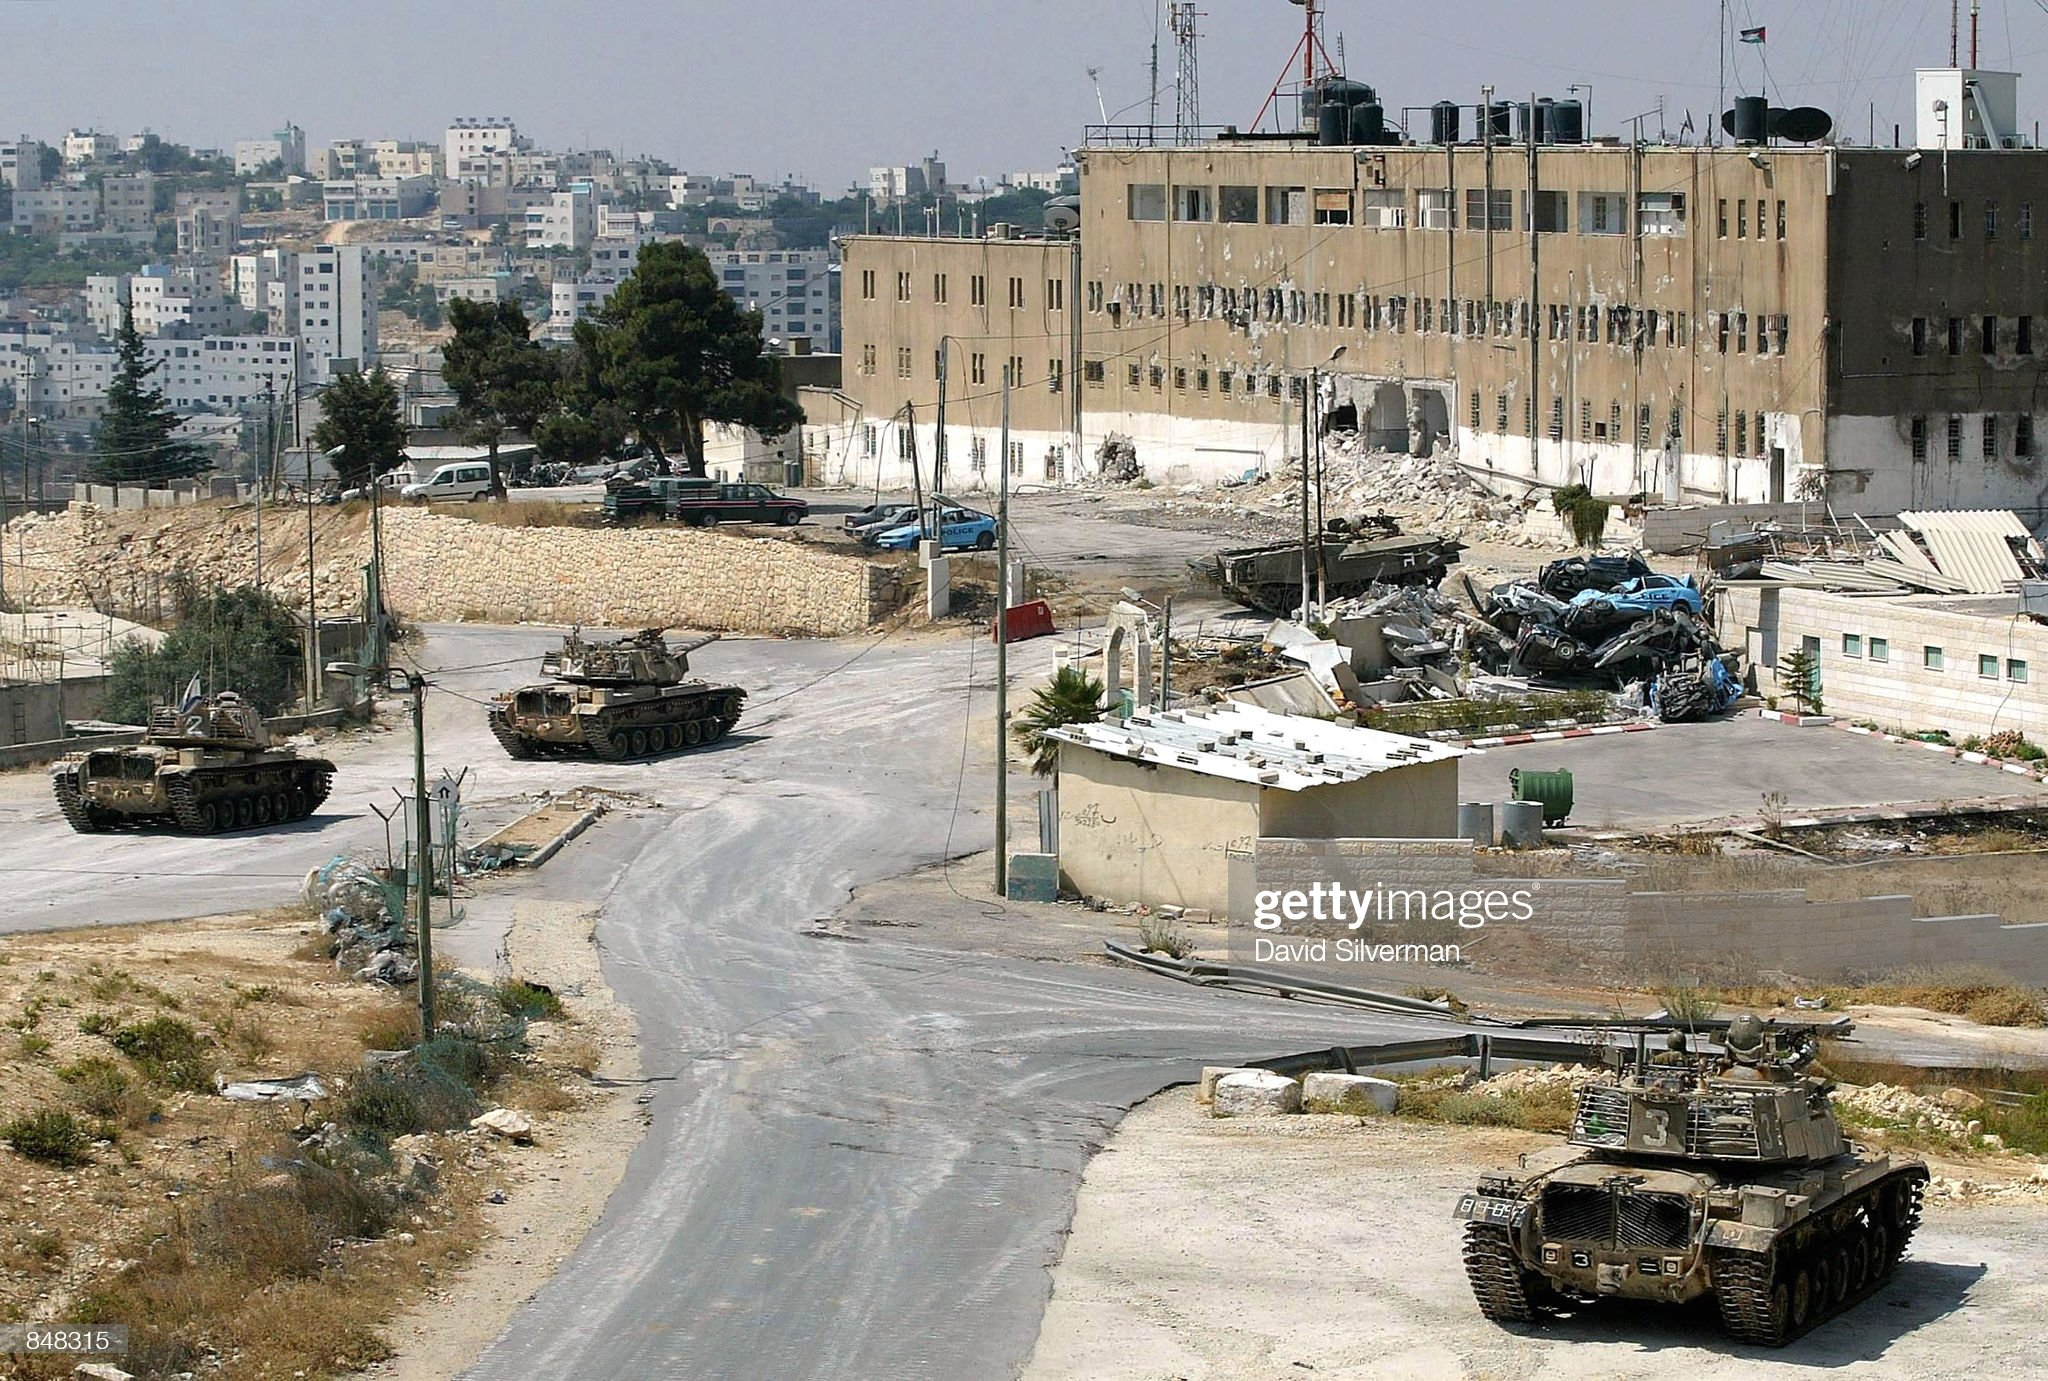 https://media.gettyimages.com/photos/israeli-tanks-surround-palestinian-police-headquarters-june-27-2002-picture-id848315?s=2048x2048